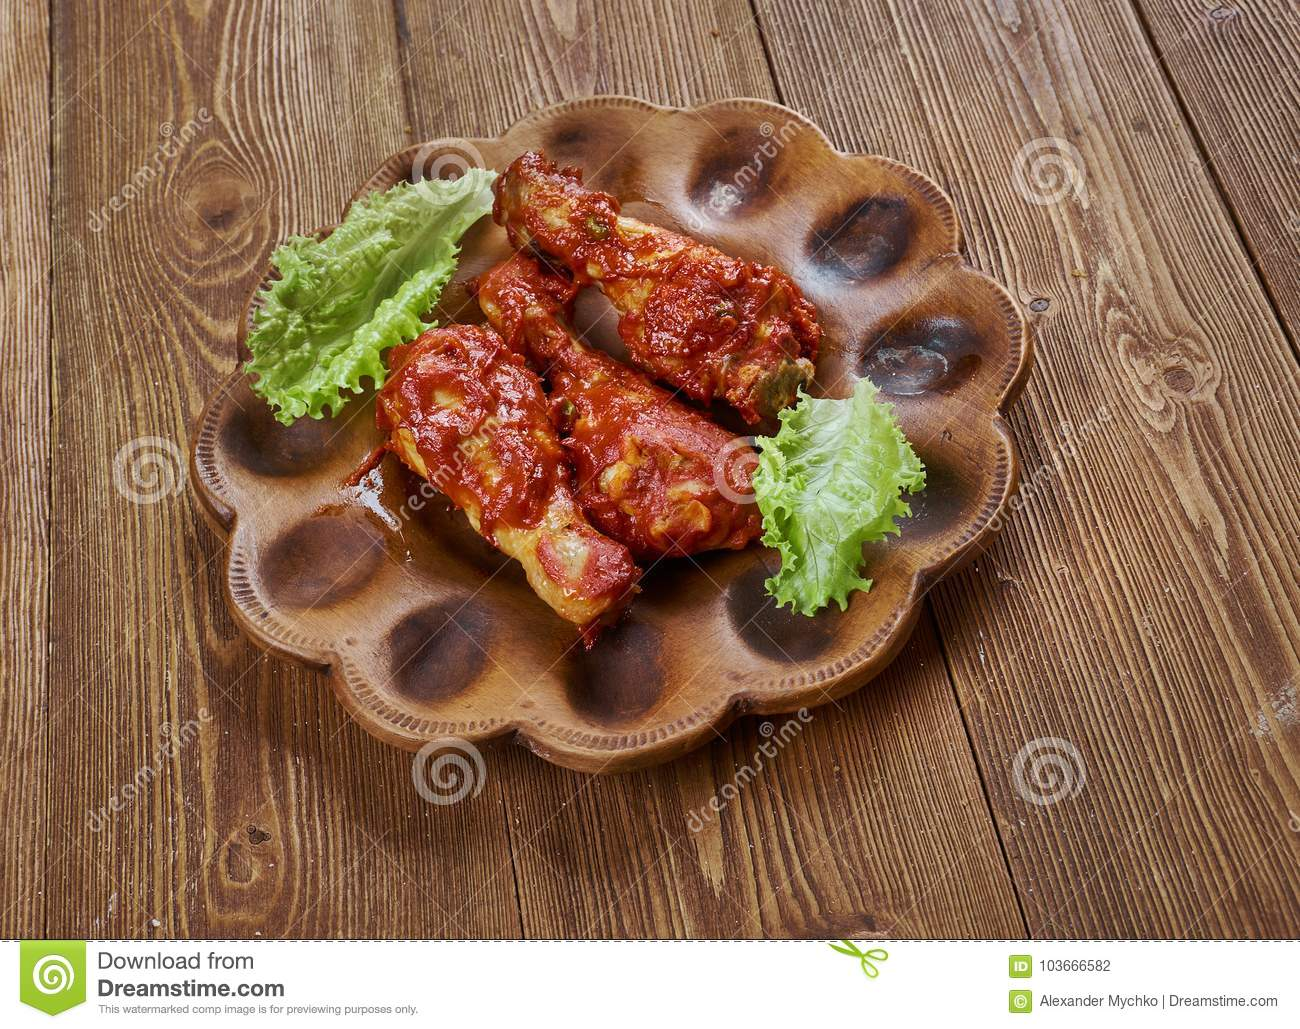 Tamil country chicken stock photo  Image of meat, culture